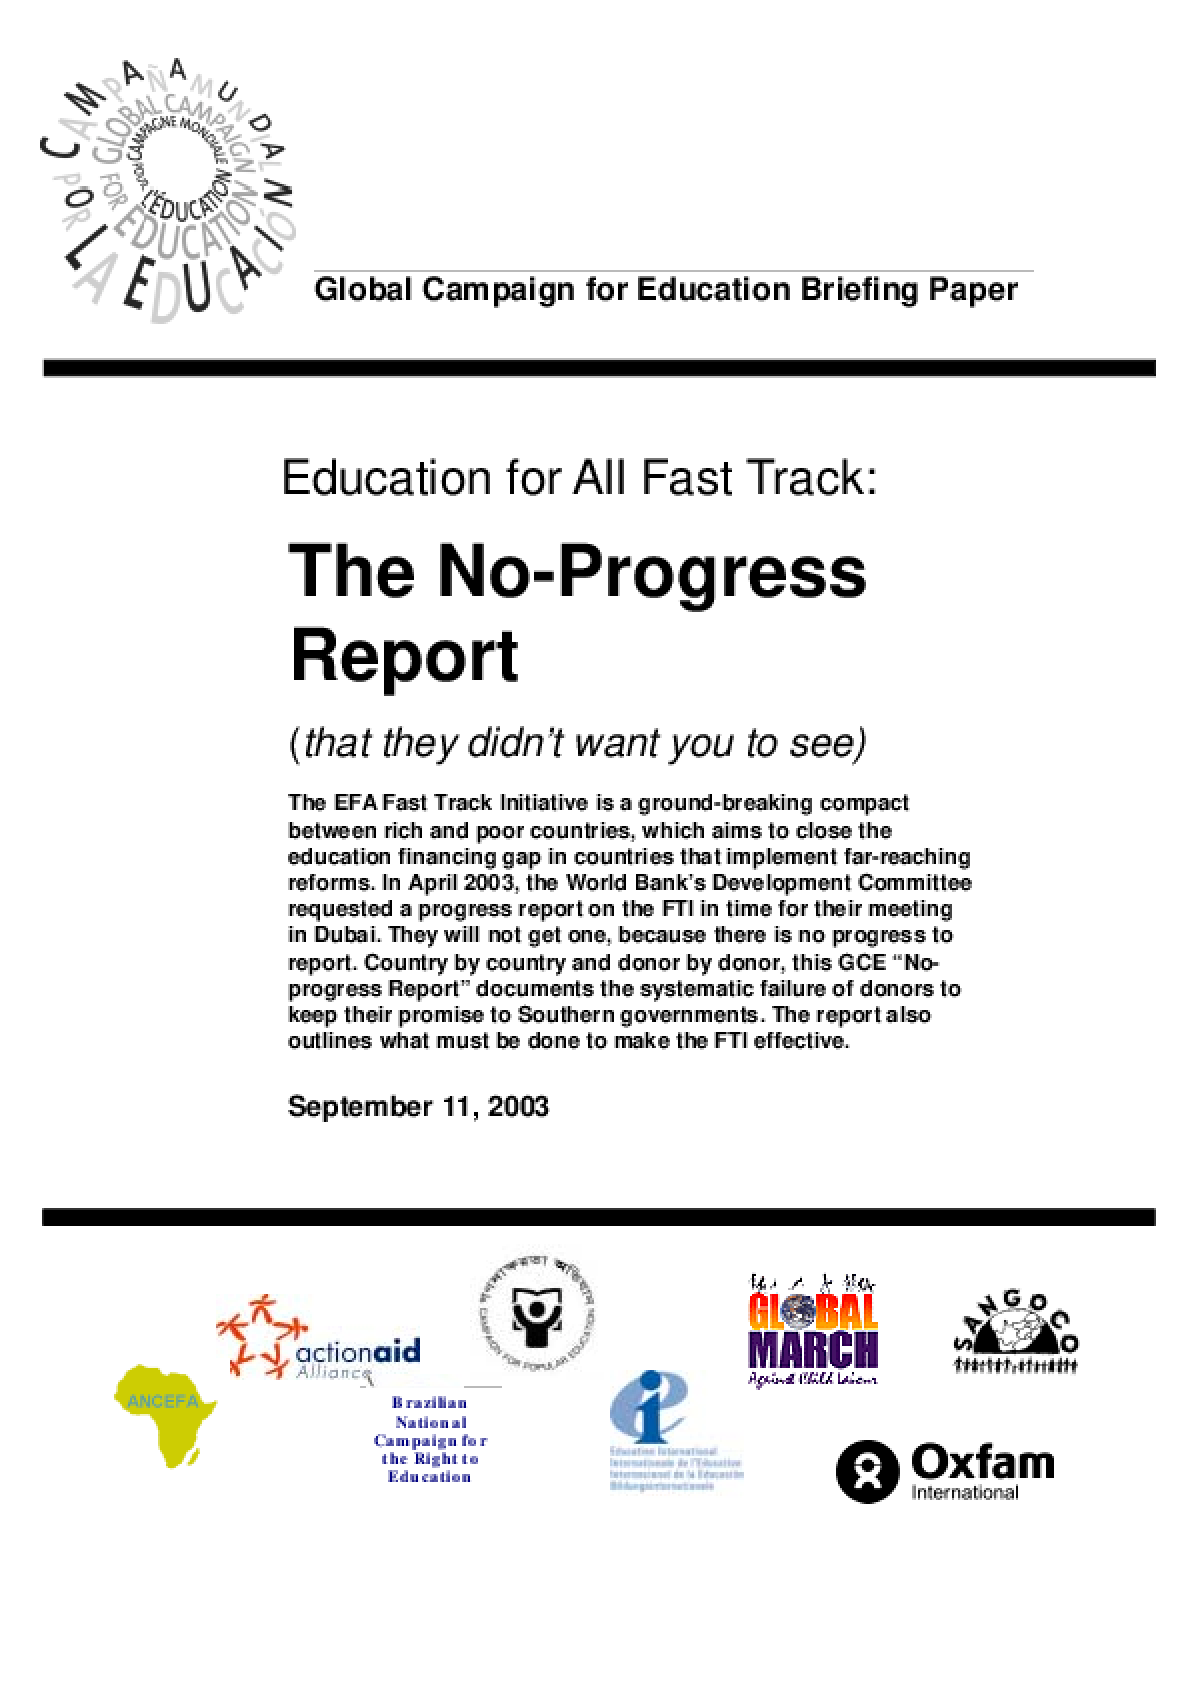 Education for All Fast Track: The No-Progress Report